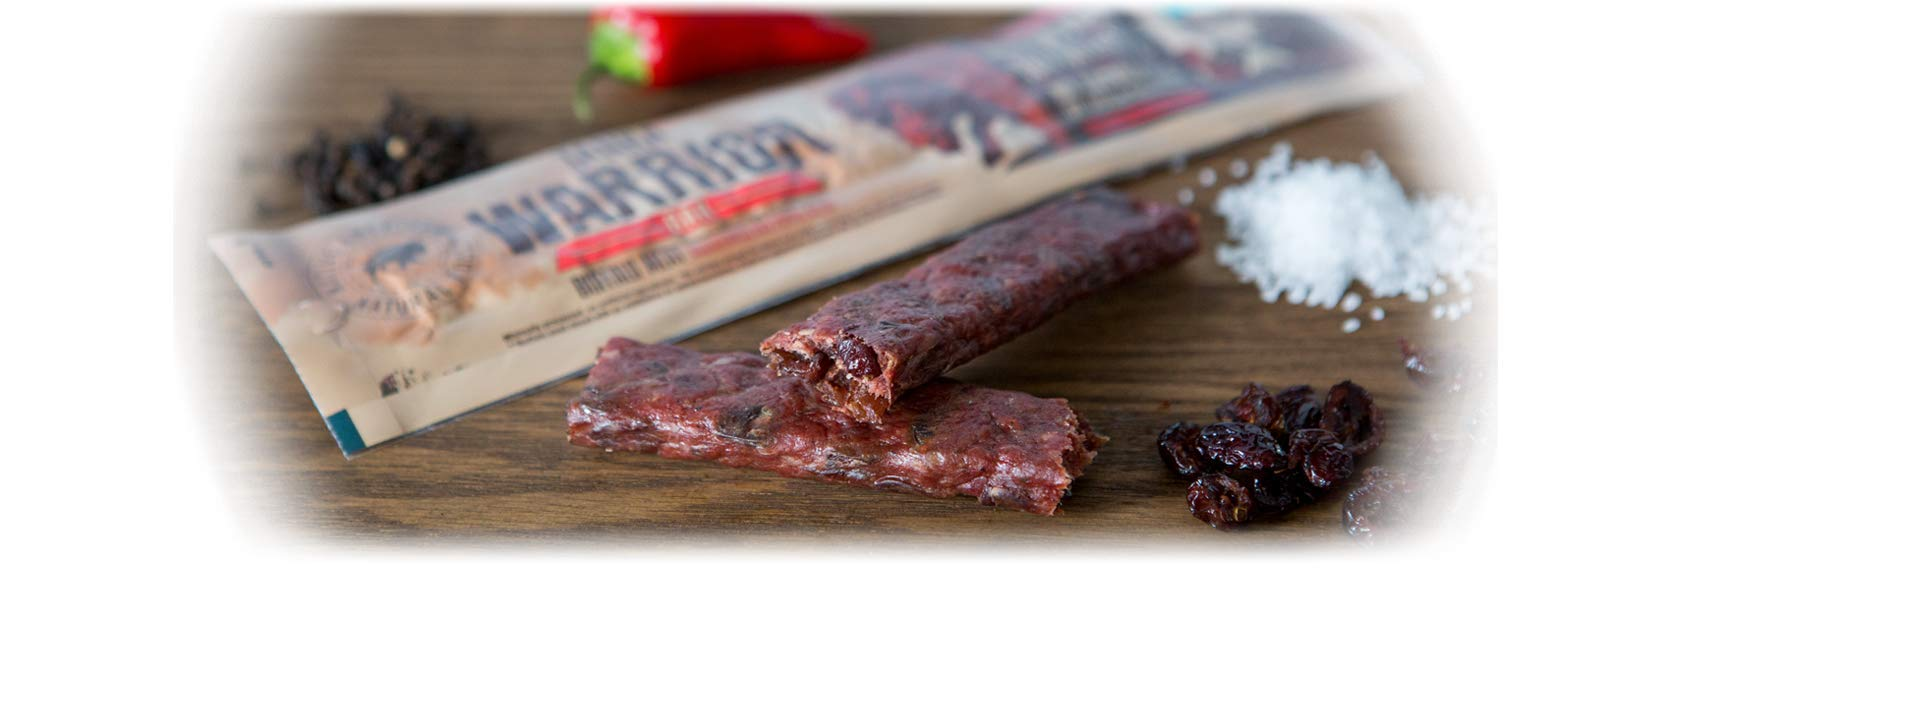 Bison Pemmican Meat Bar with Buffalo and Cranberries by Tanka, Gluten Free, Beef Jerky Alternative, Slow Smoked Original, 2 Ounce Bar, Pack of 12 by Tanka (Image #5)